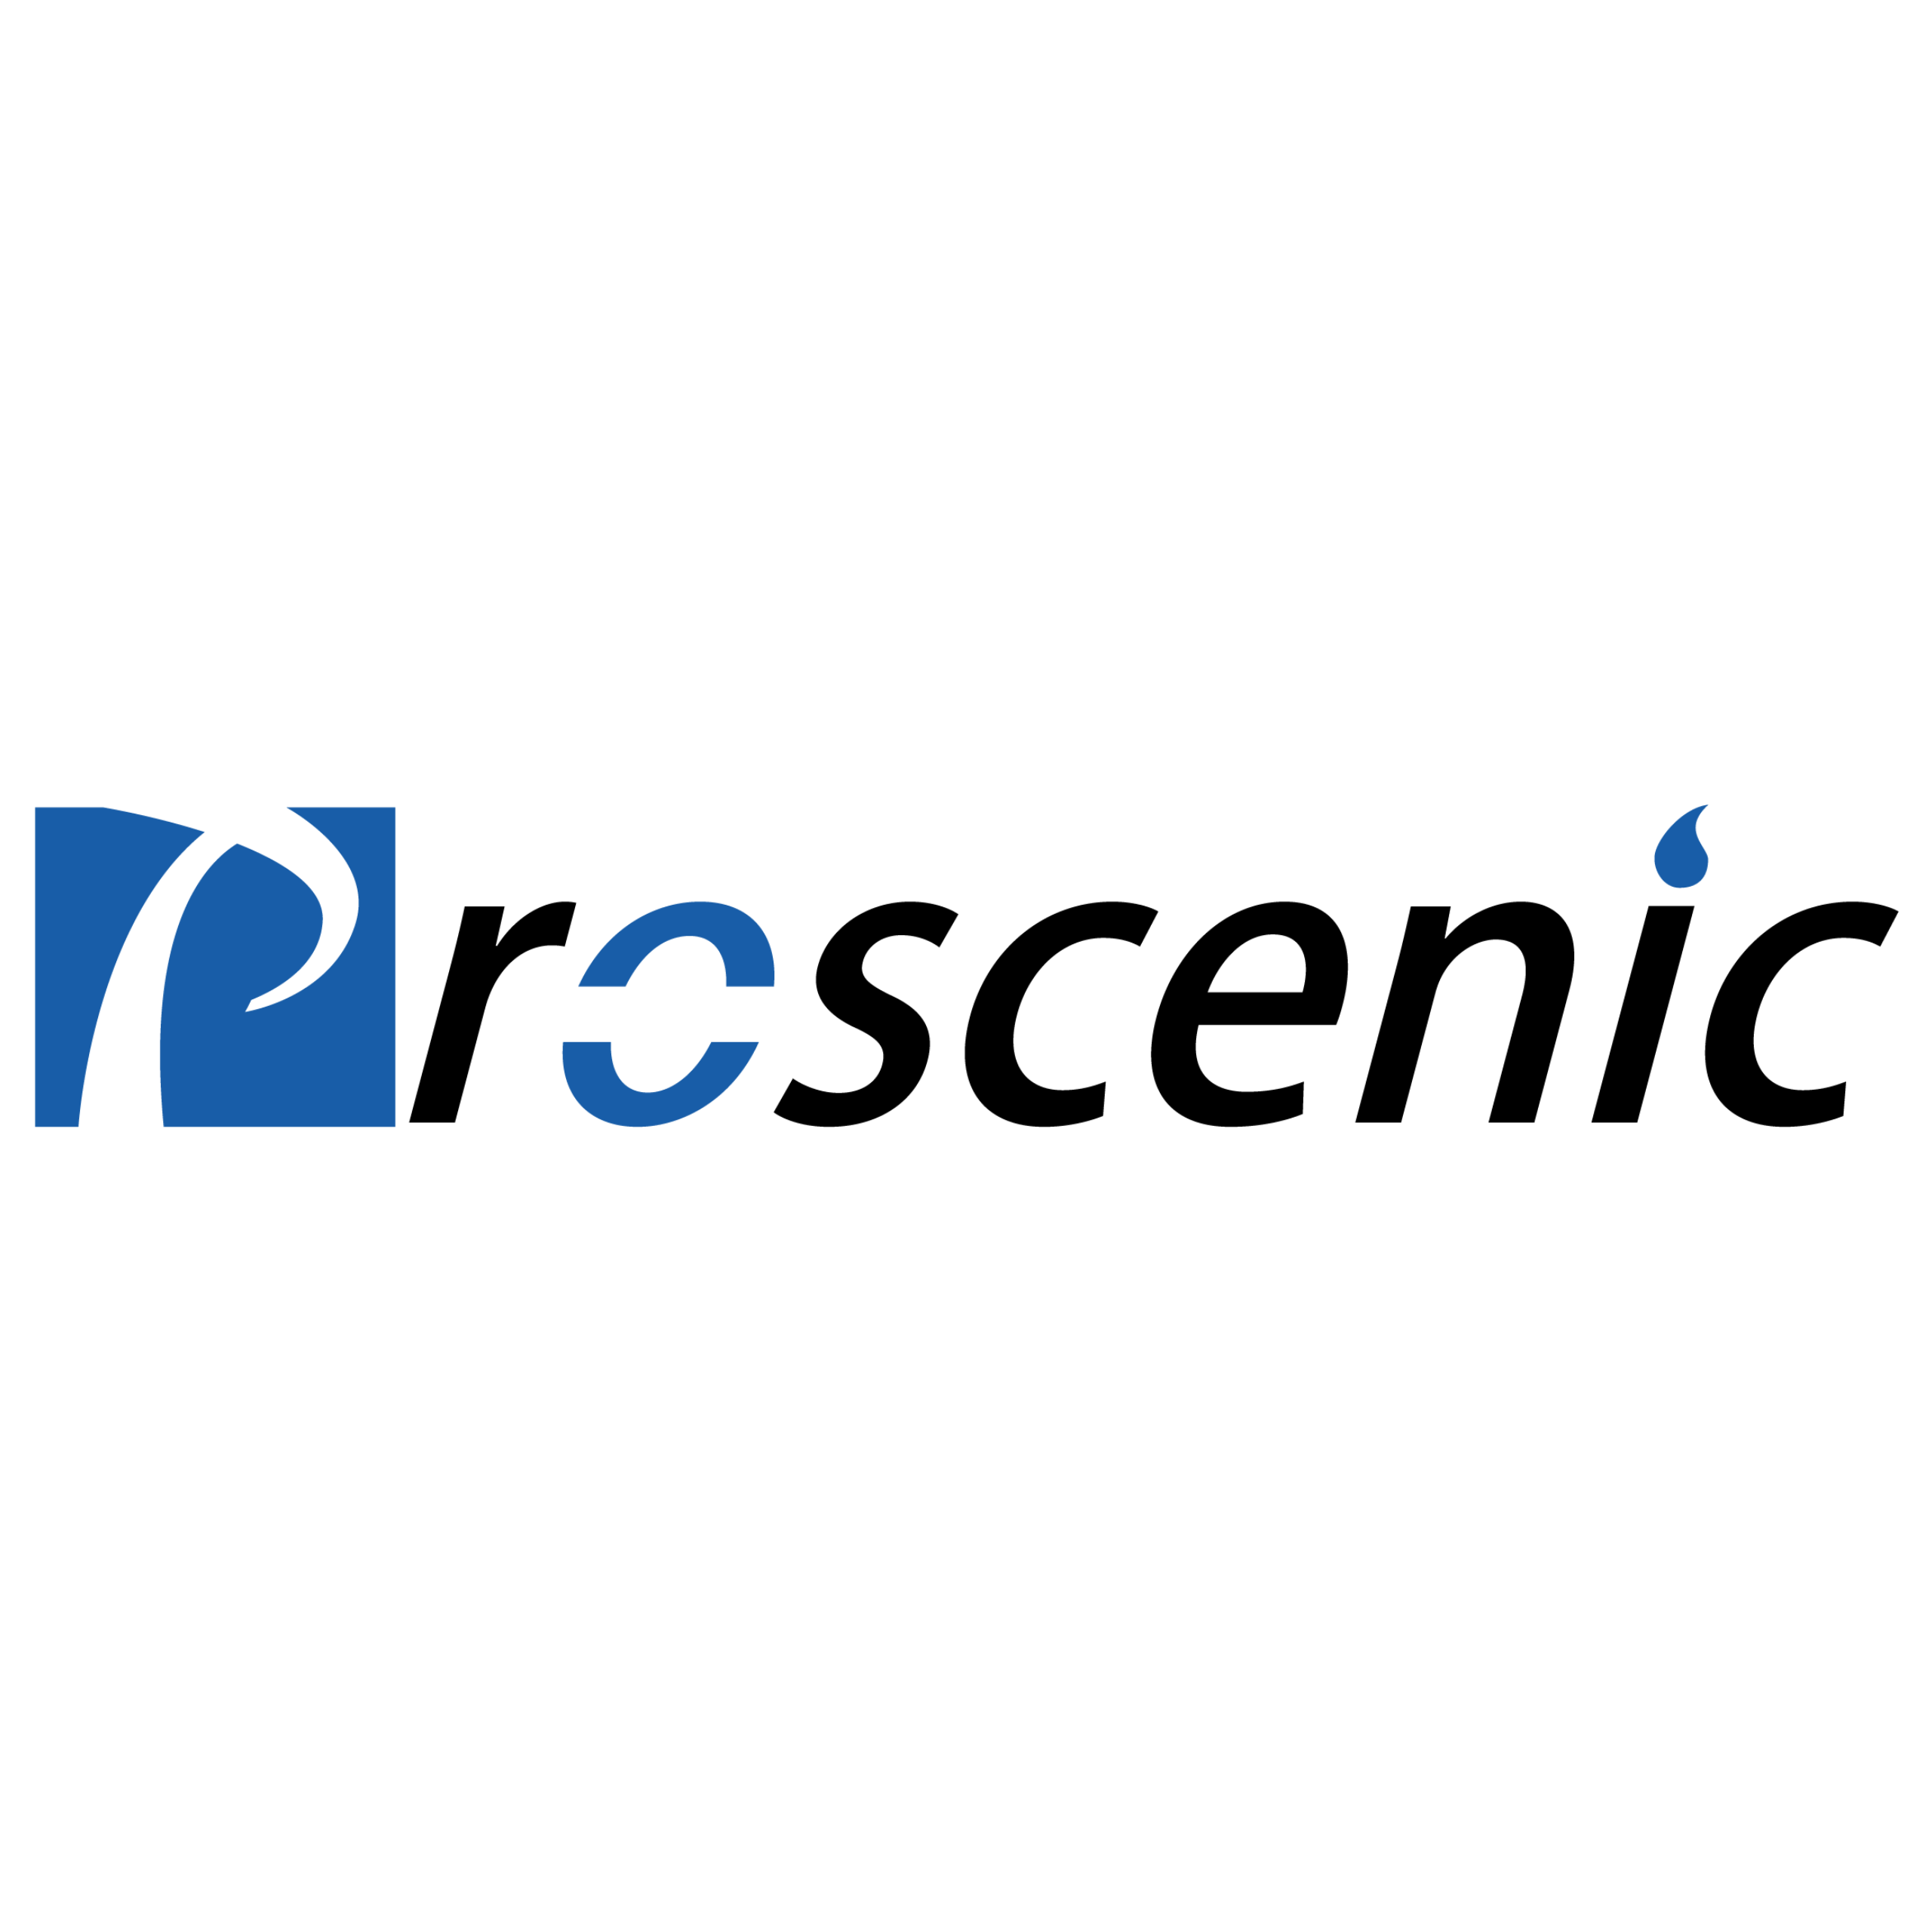 Shenzhen Proscenic Technology Co.,Ltd